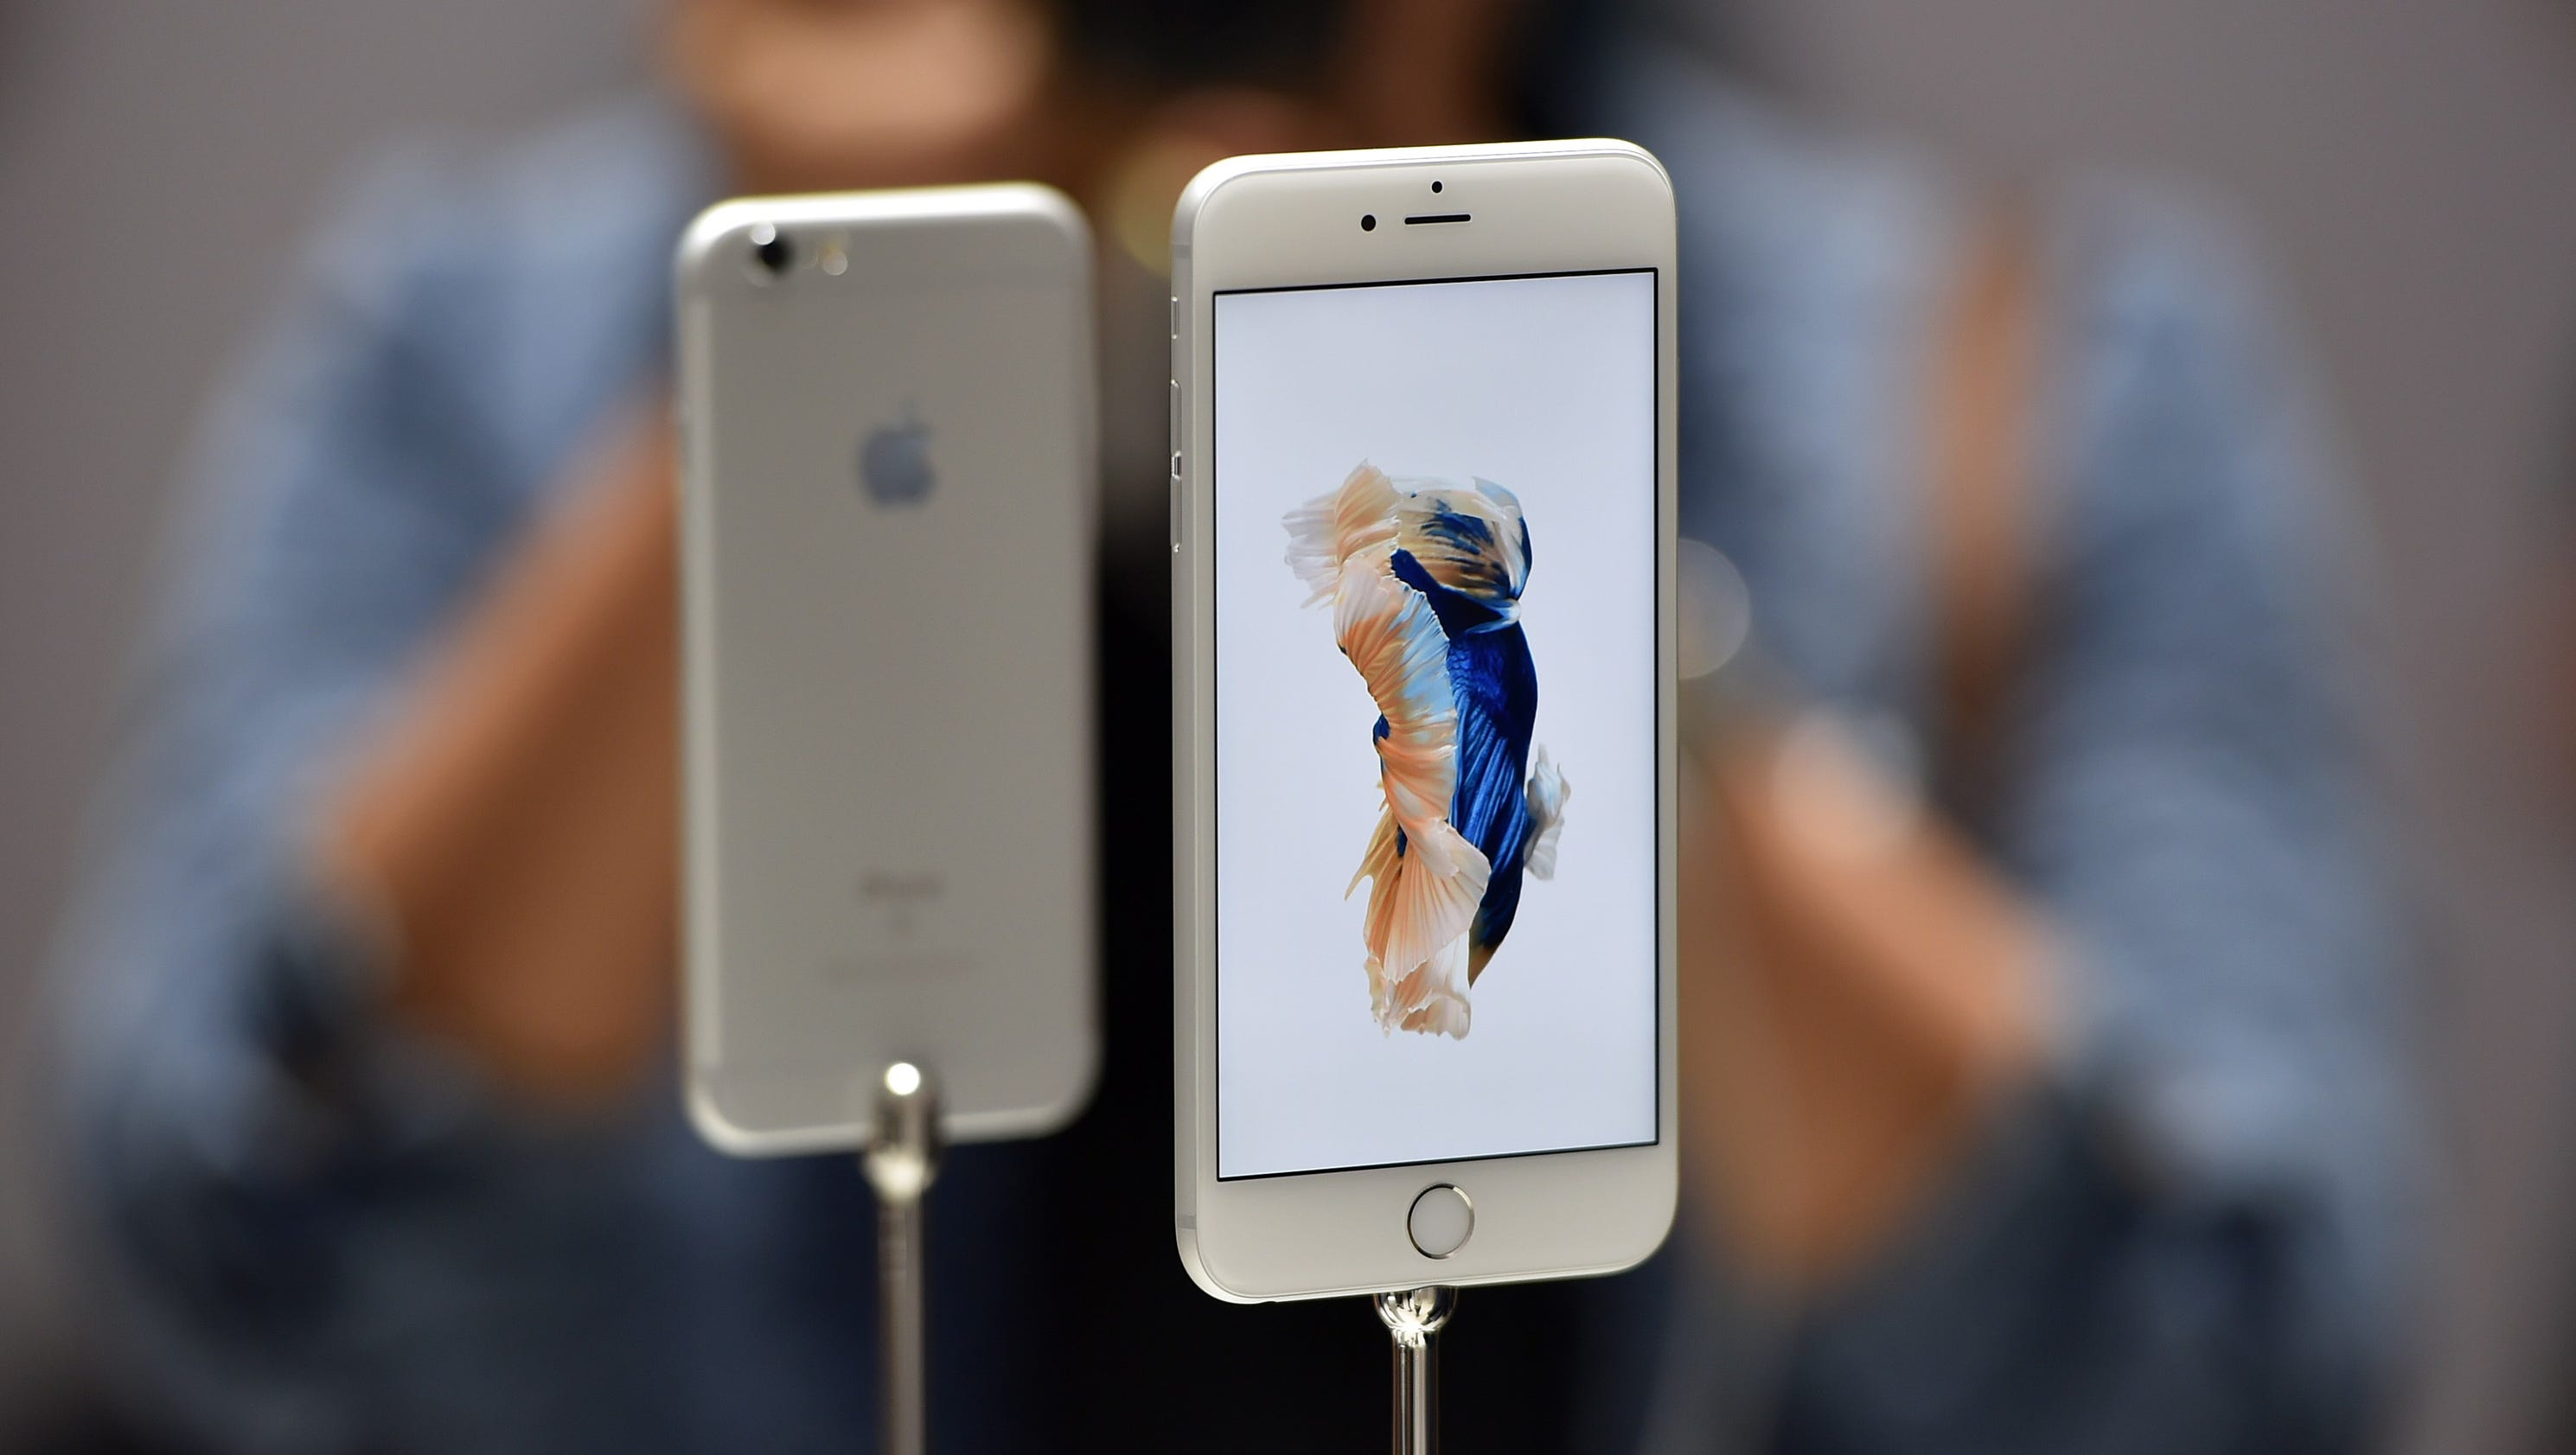 Eyeing iPhone 6S or 6S Plus? Here's how to sell your old iPhone